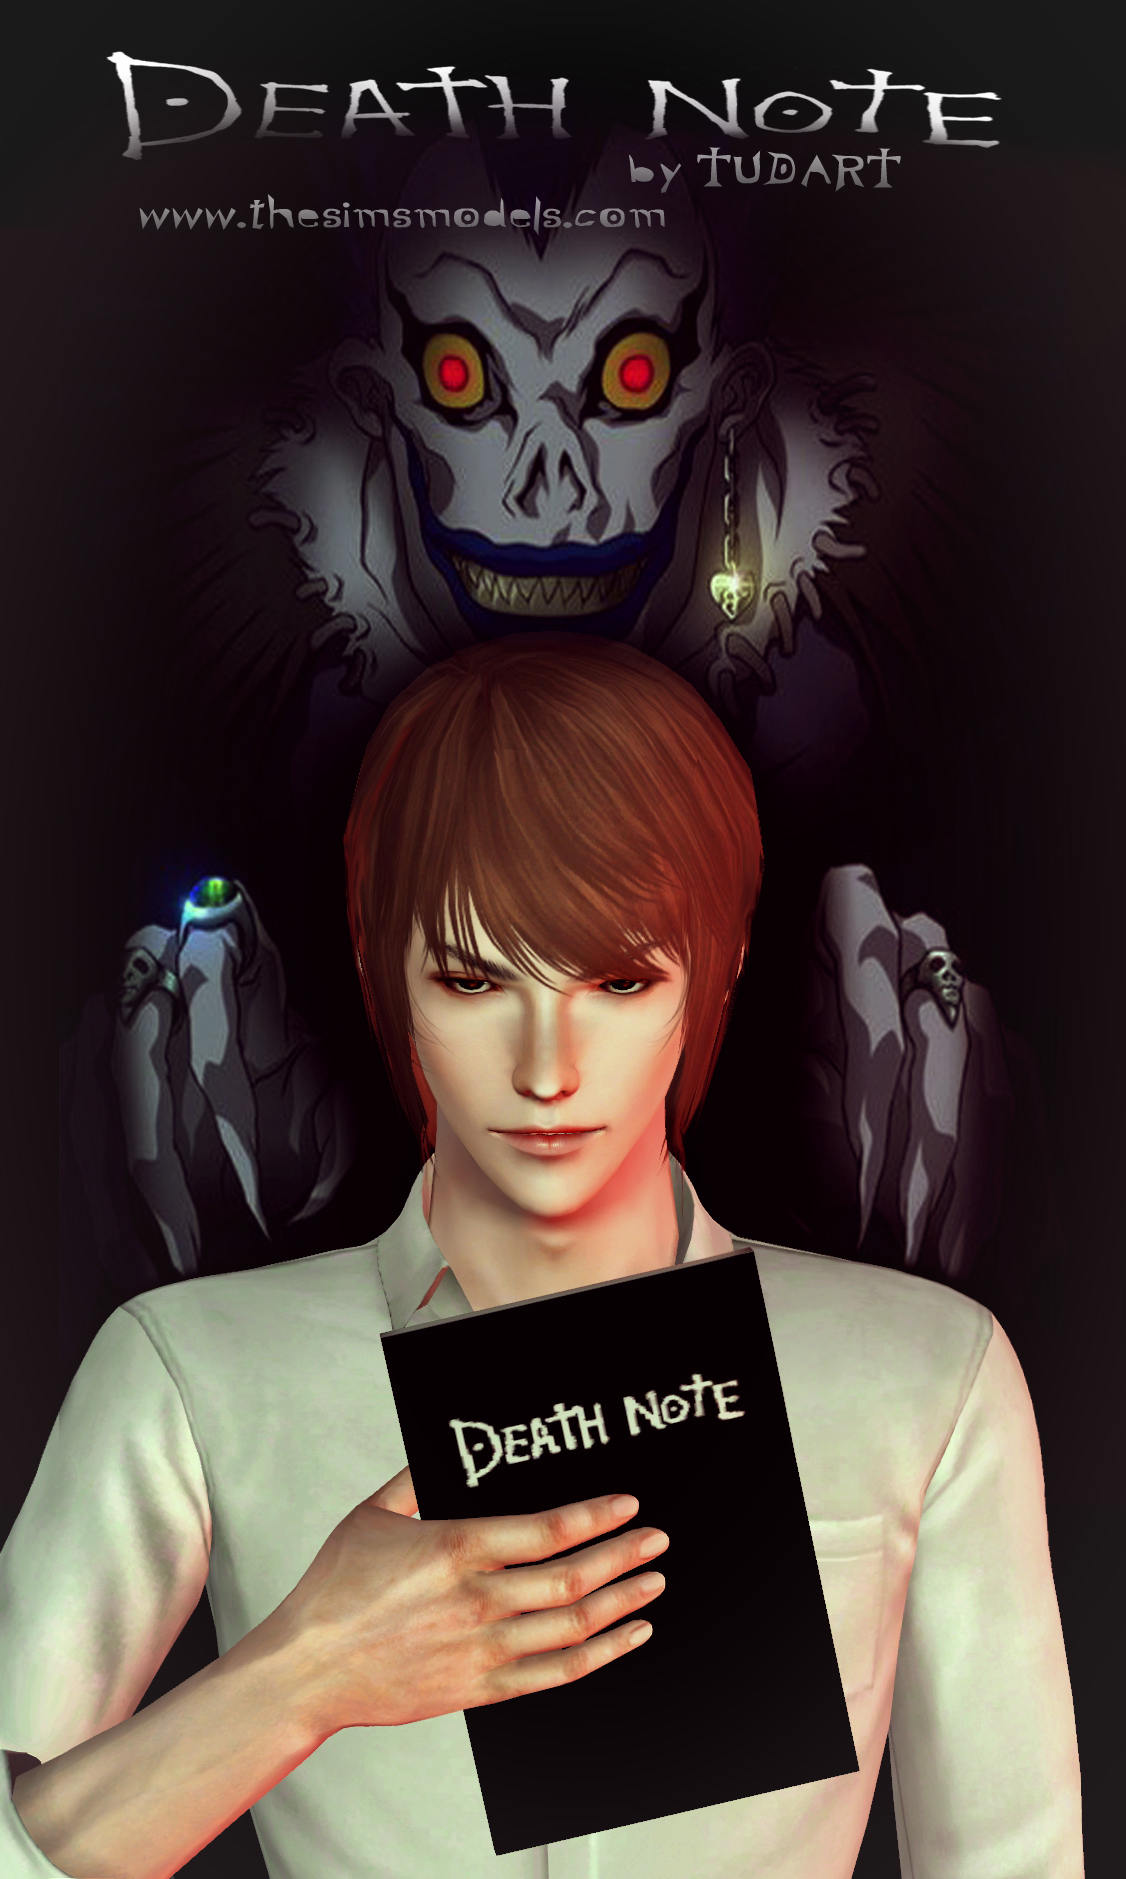 Death note by TUDART